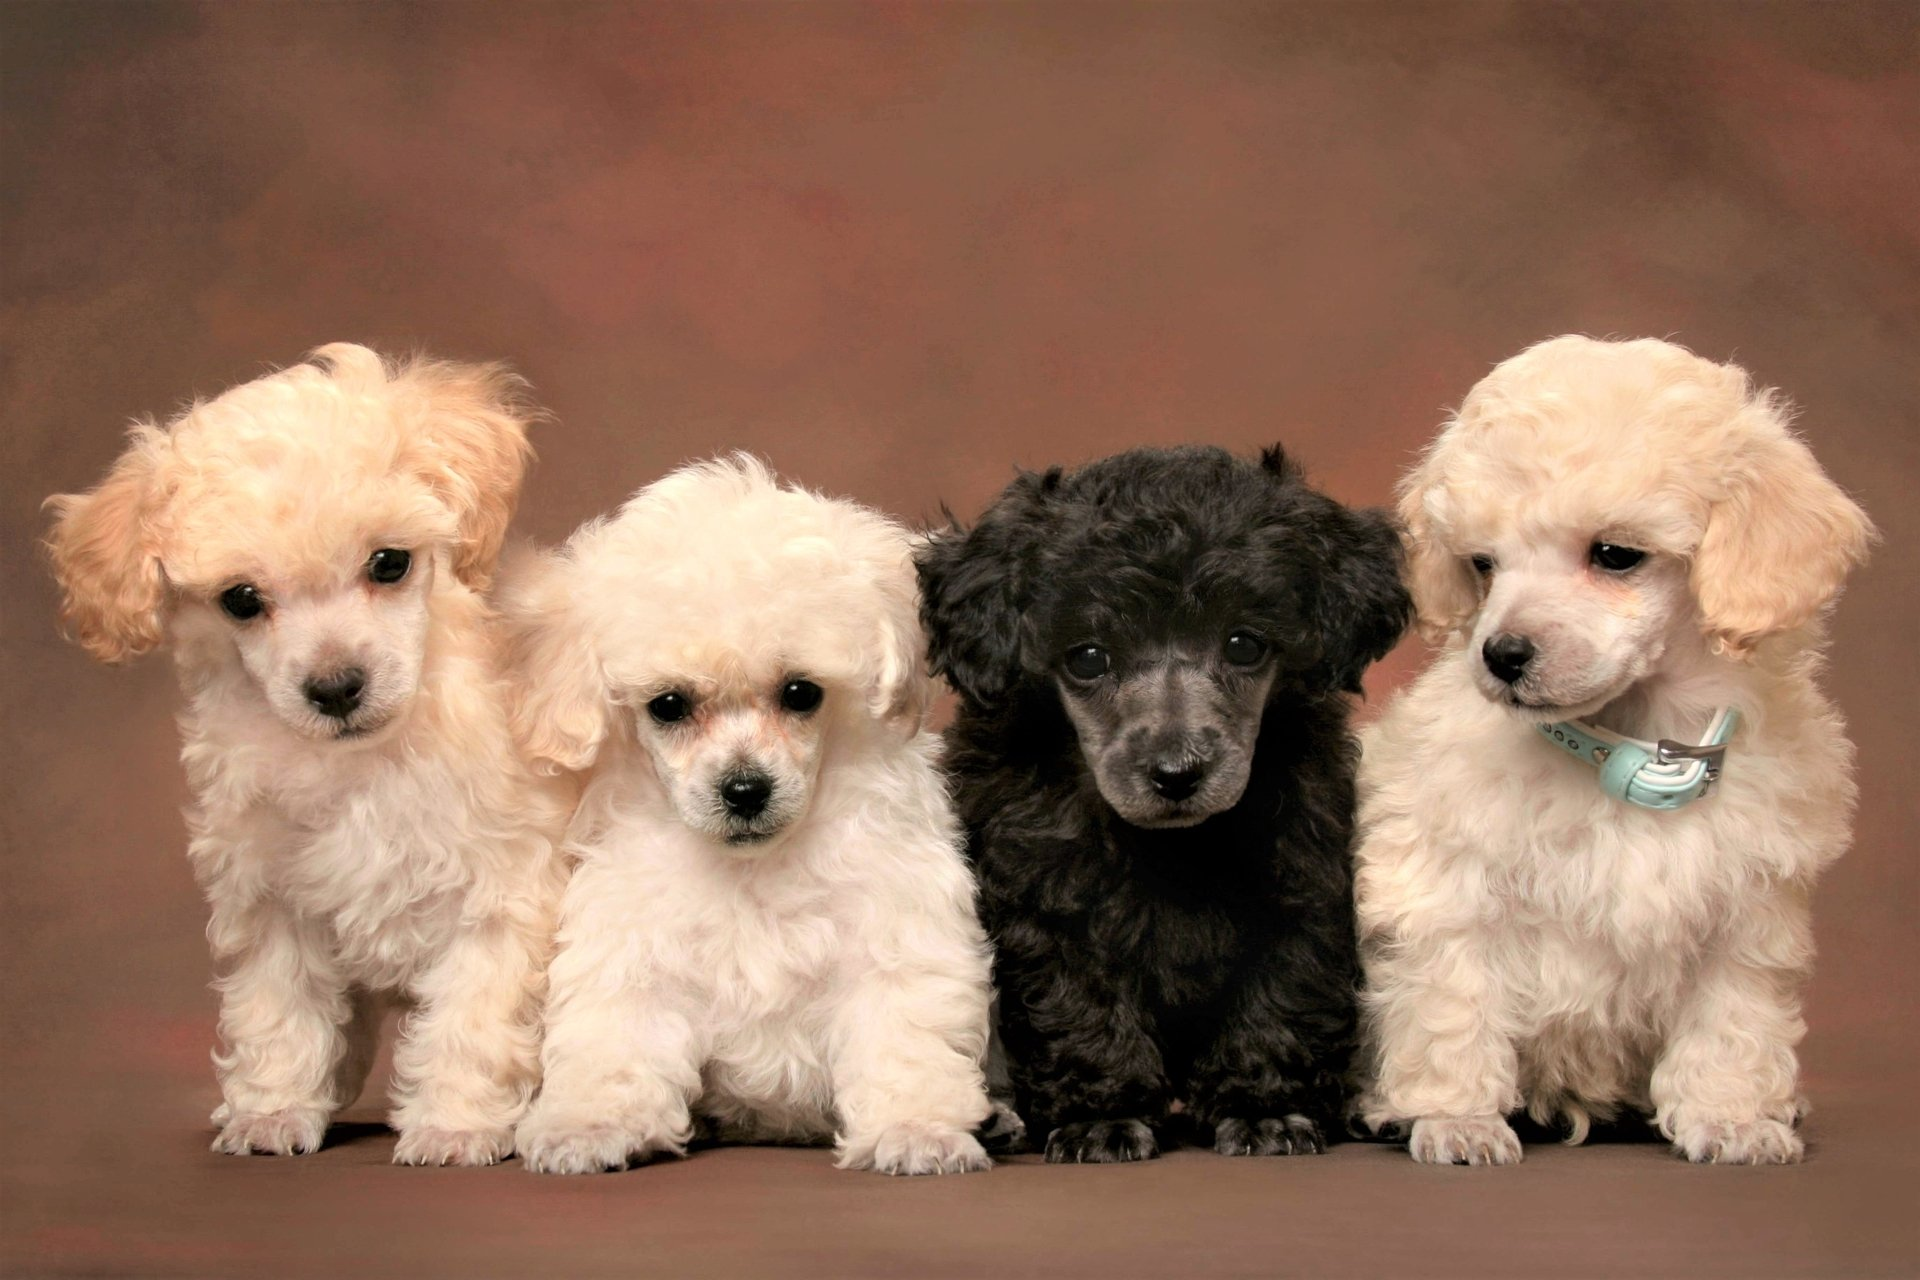 Animal - Poodle  Baby Animal Animal Puppy Cute Wallpaper